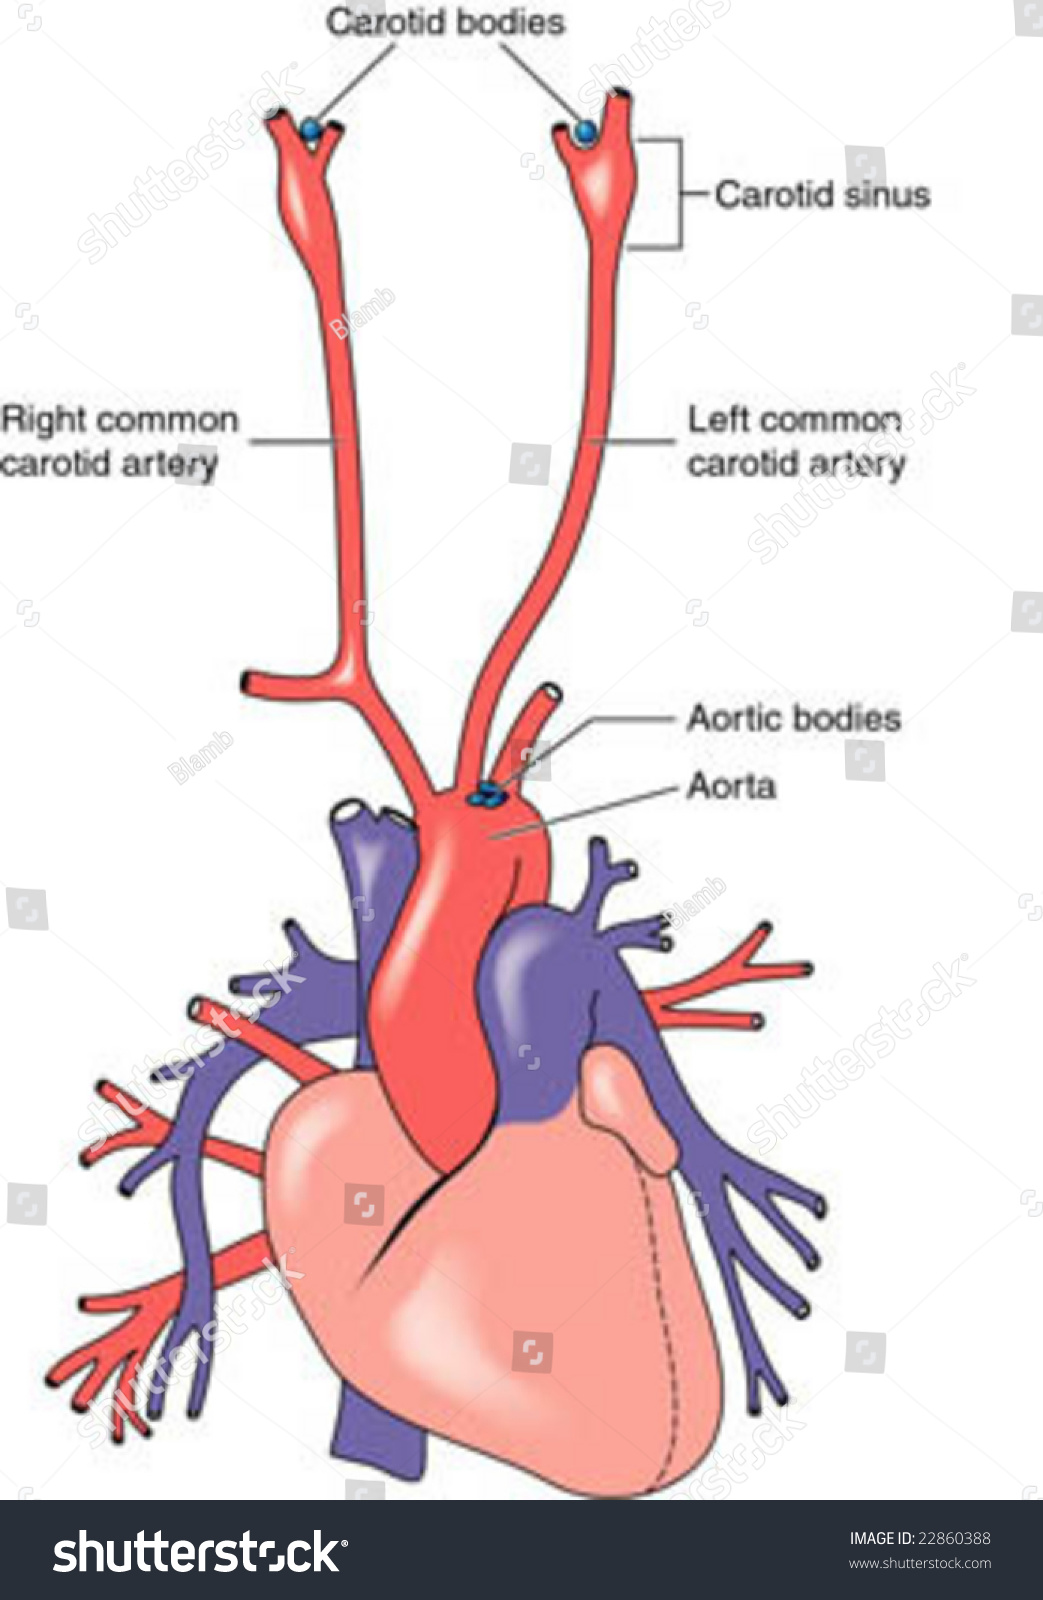 carotid artery diagram stove wiring south africa aortic bodies stock vector 22860388 shutterstock